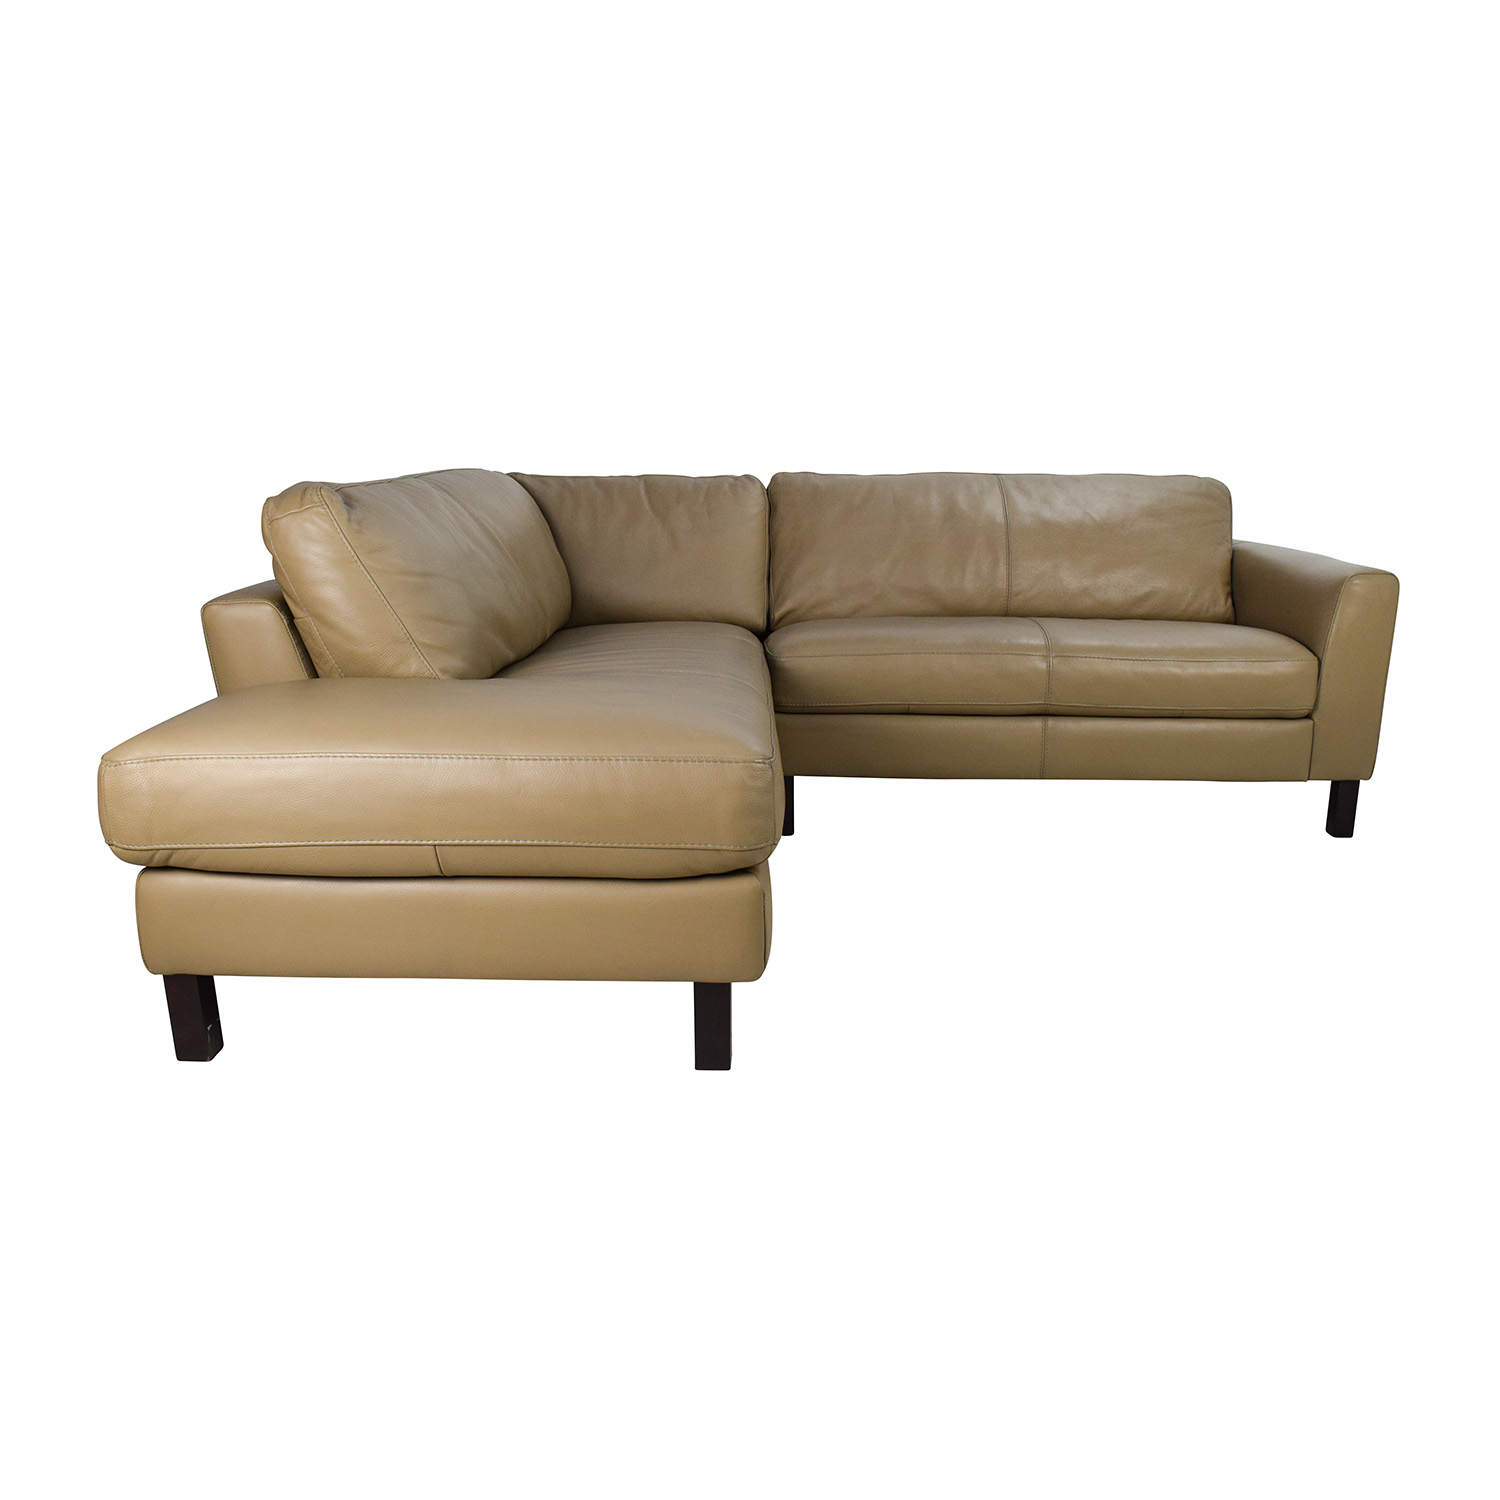 Used Sectional Sofas Beautiful Used Sectional Sofas Sun Classic Beautiful Used Sectional